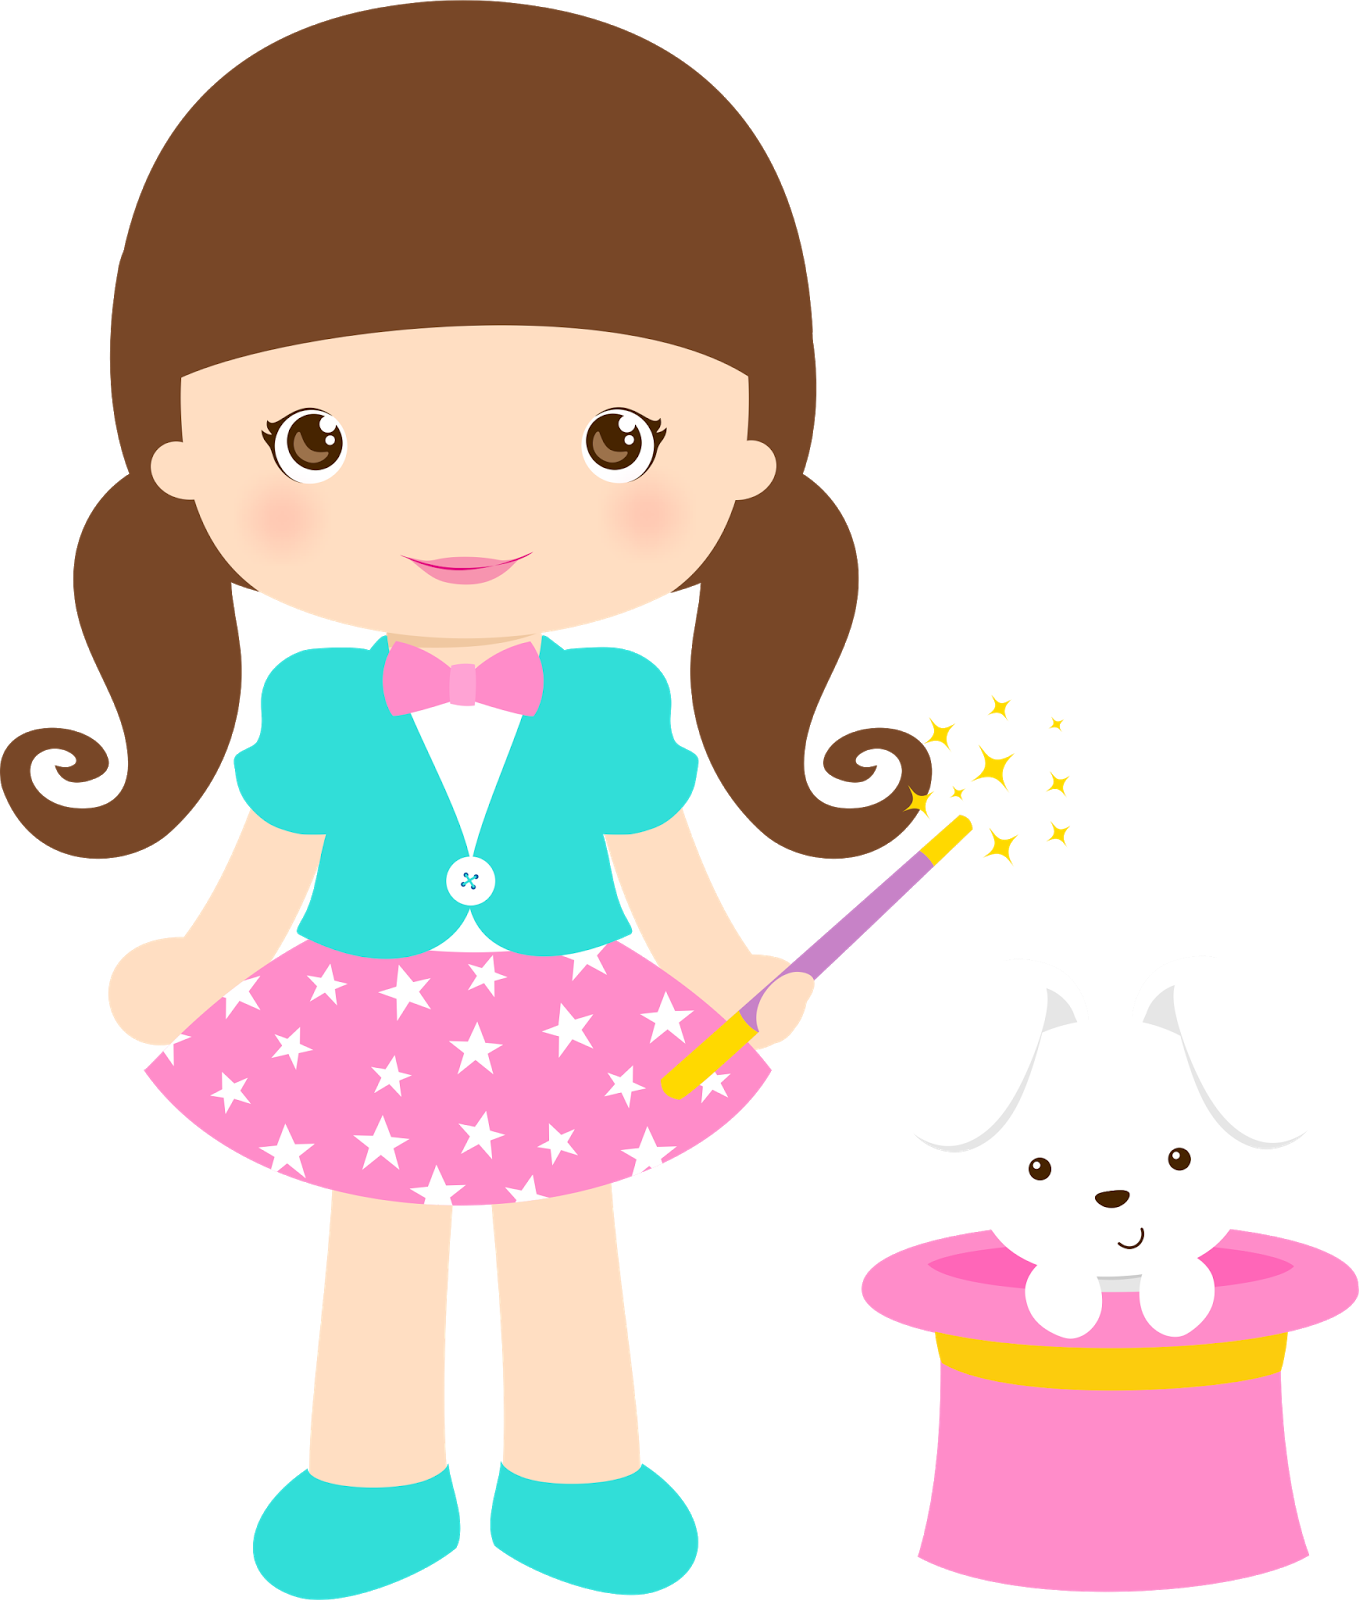 image black and white stock Girls clipart. Clown png cumplea os